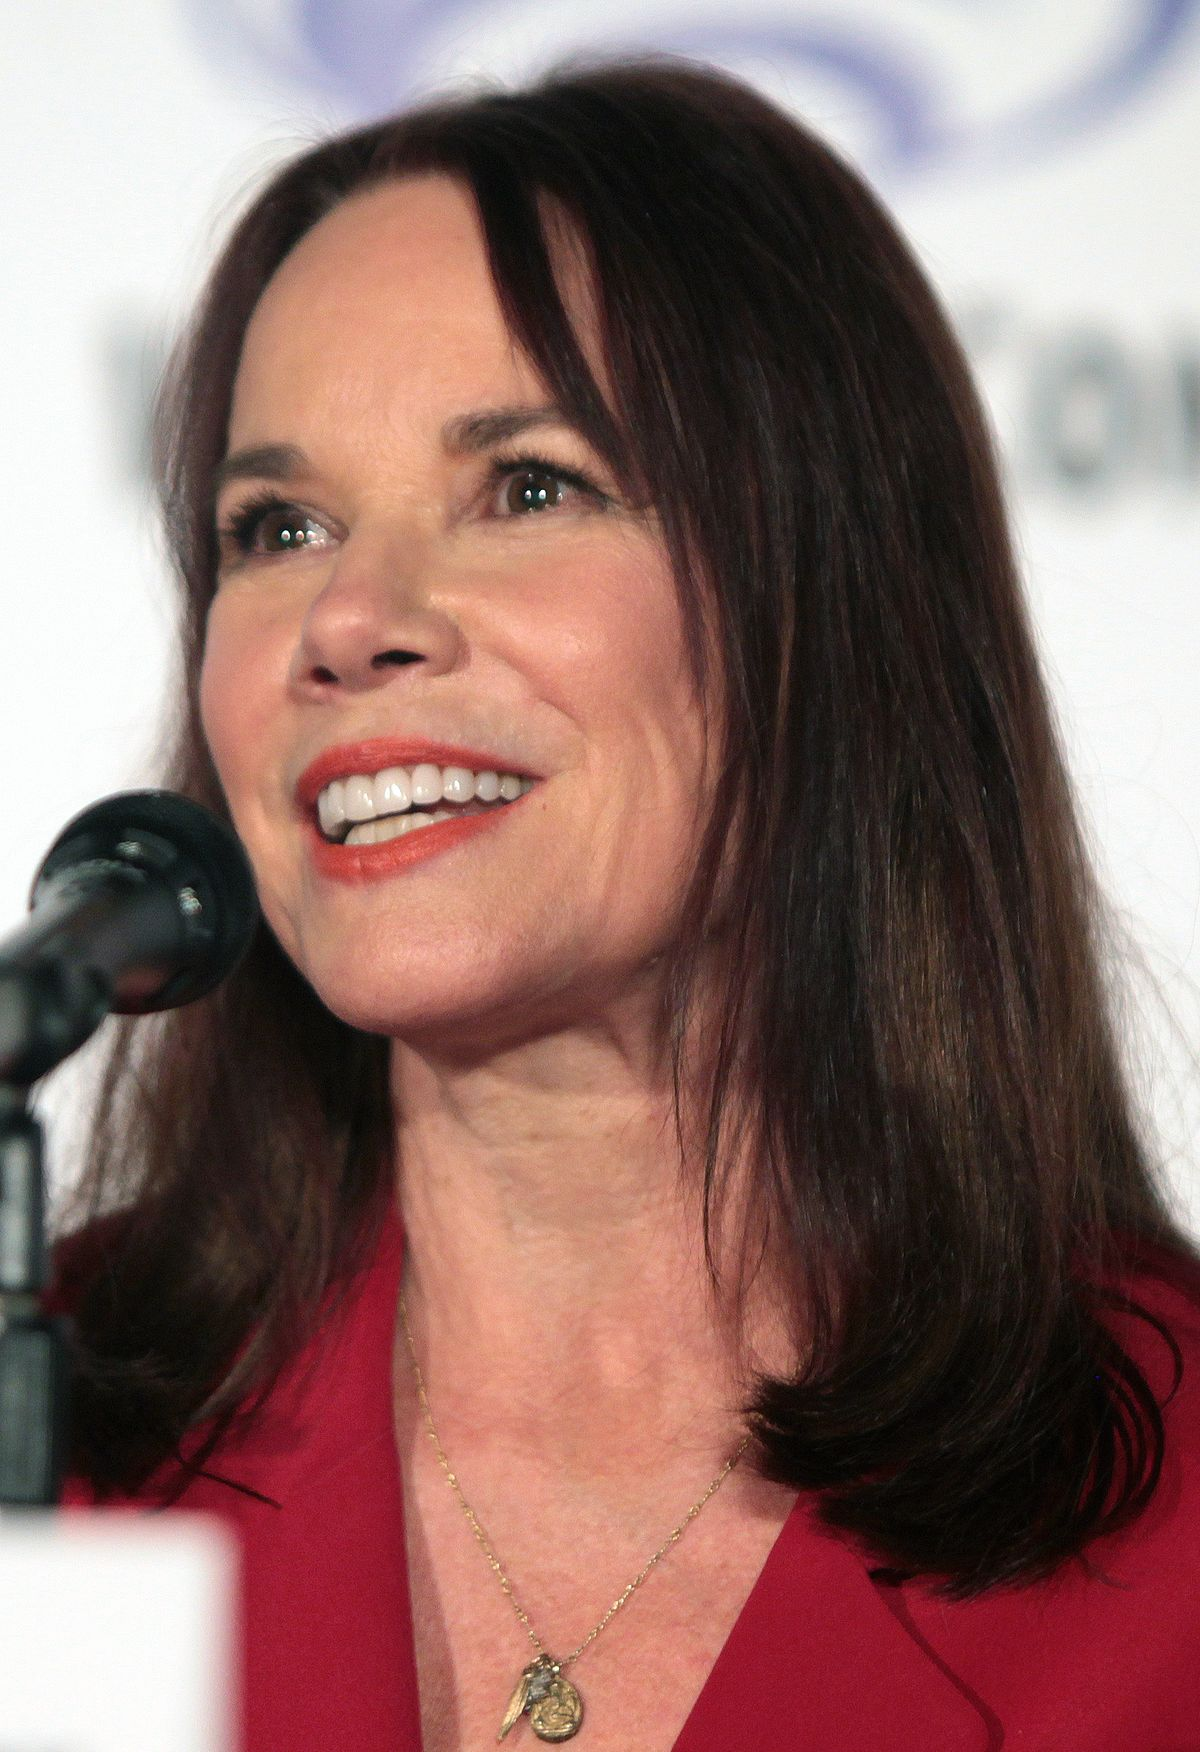 Barbara Hershey nude photos 2019